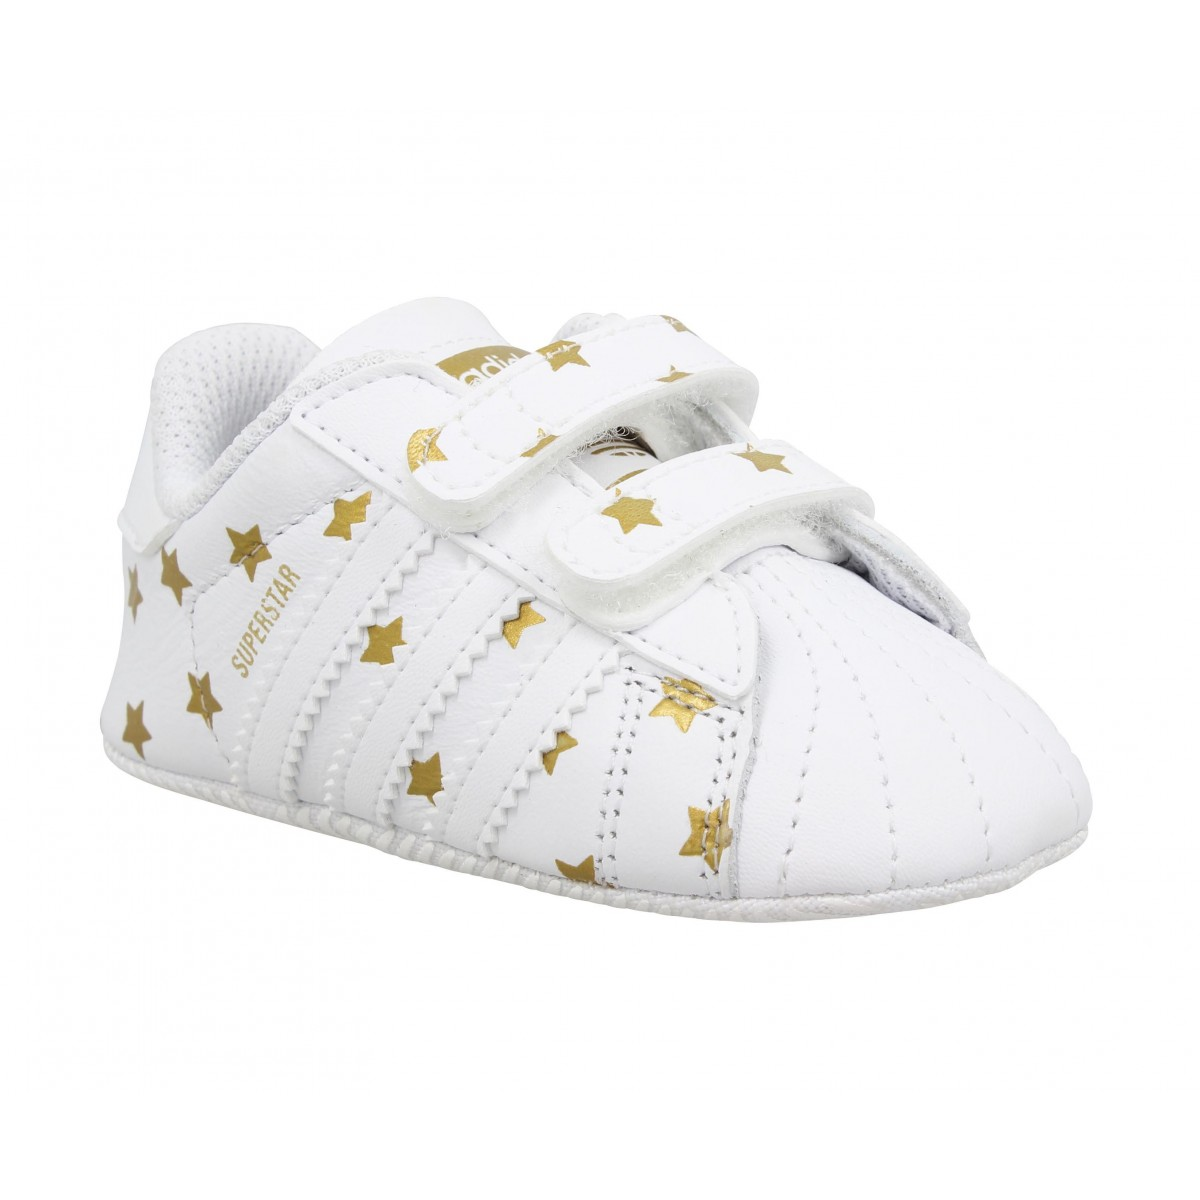 Baskets ADIDAS Superstar Crib cuir Enfant Blanc